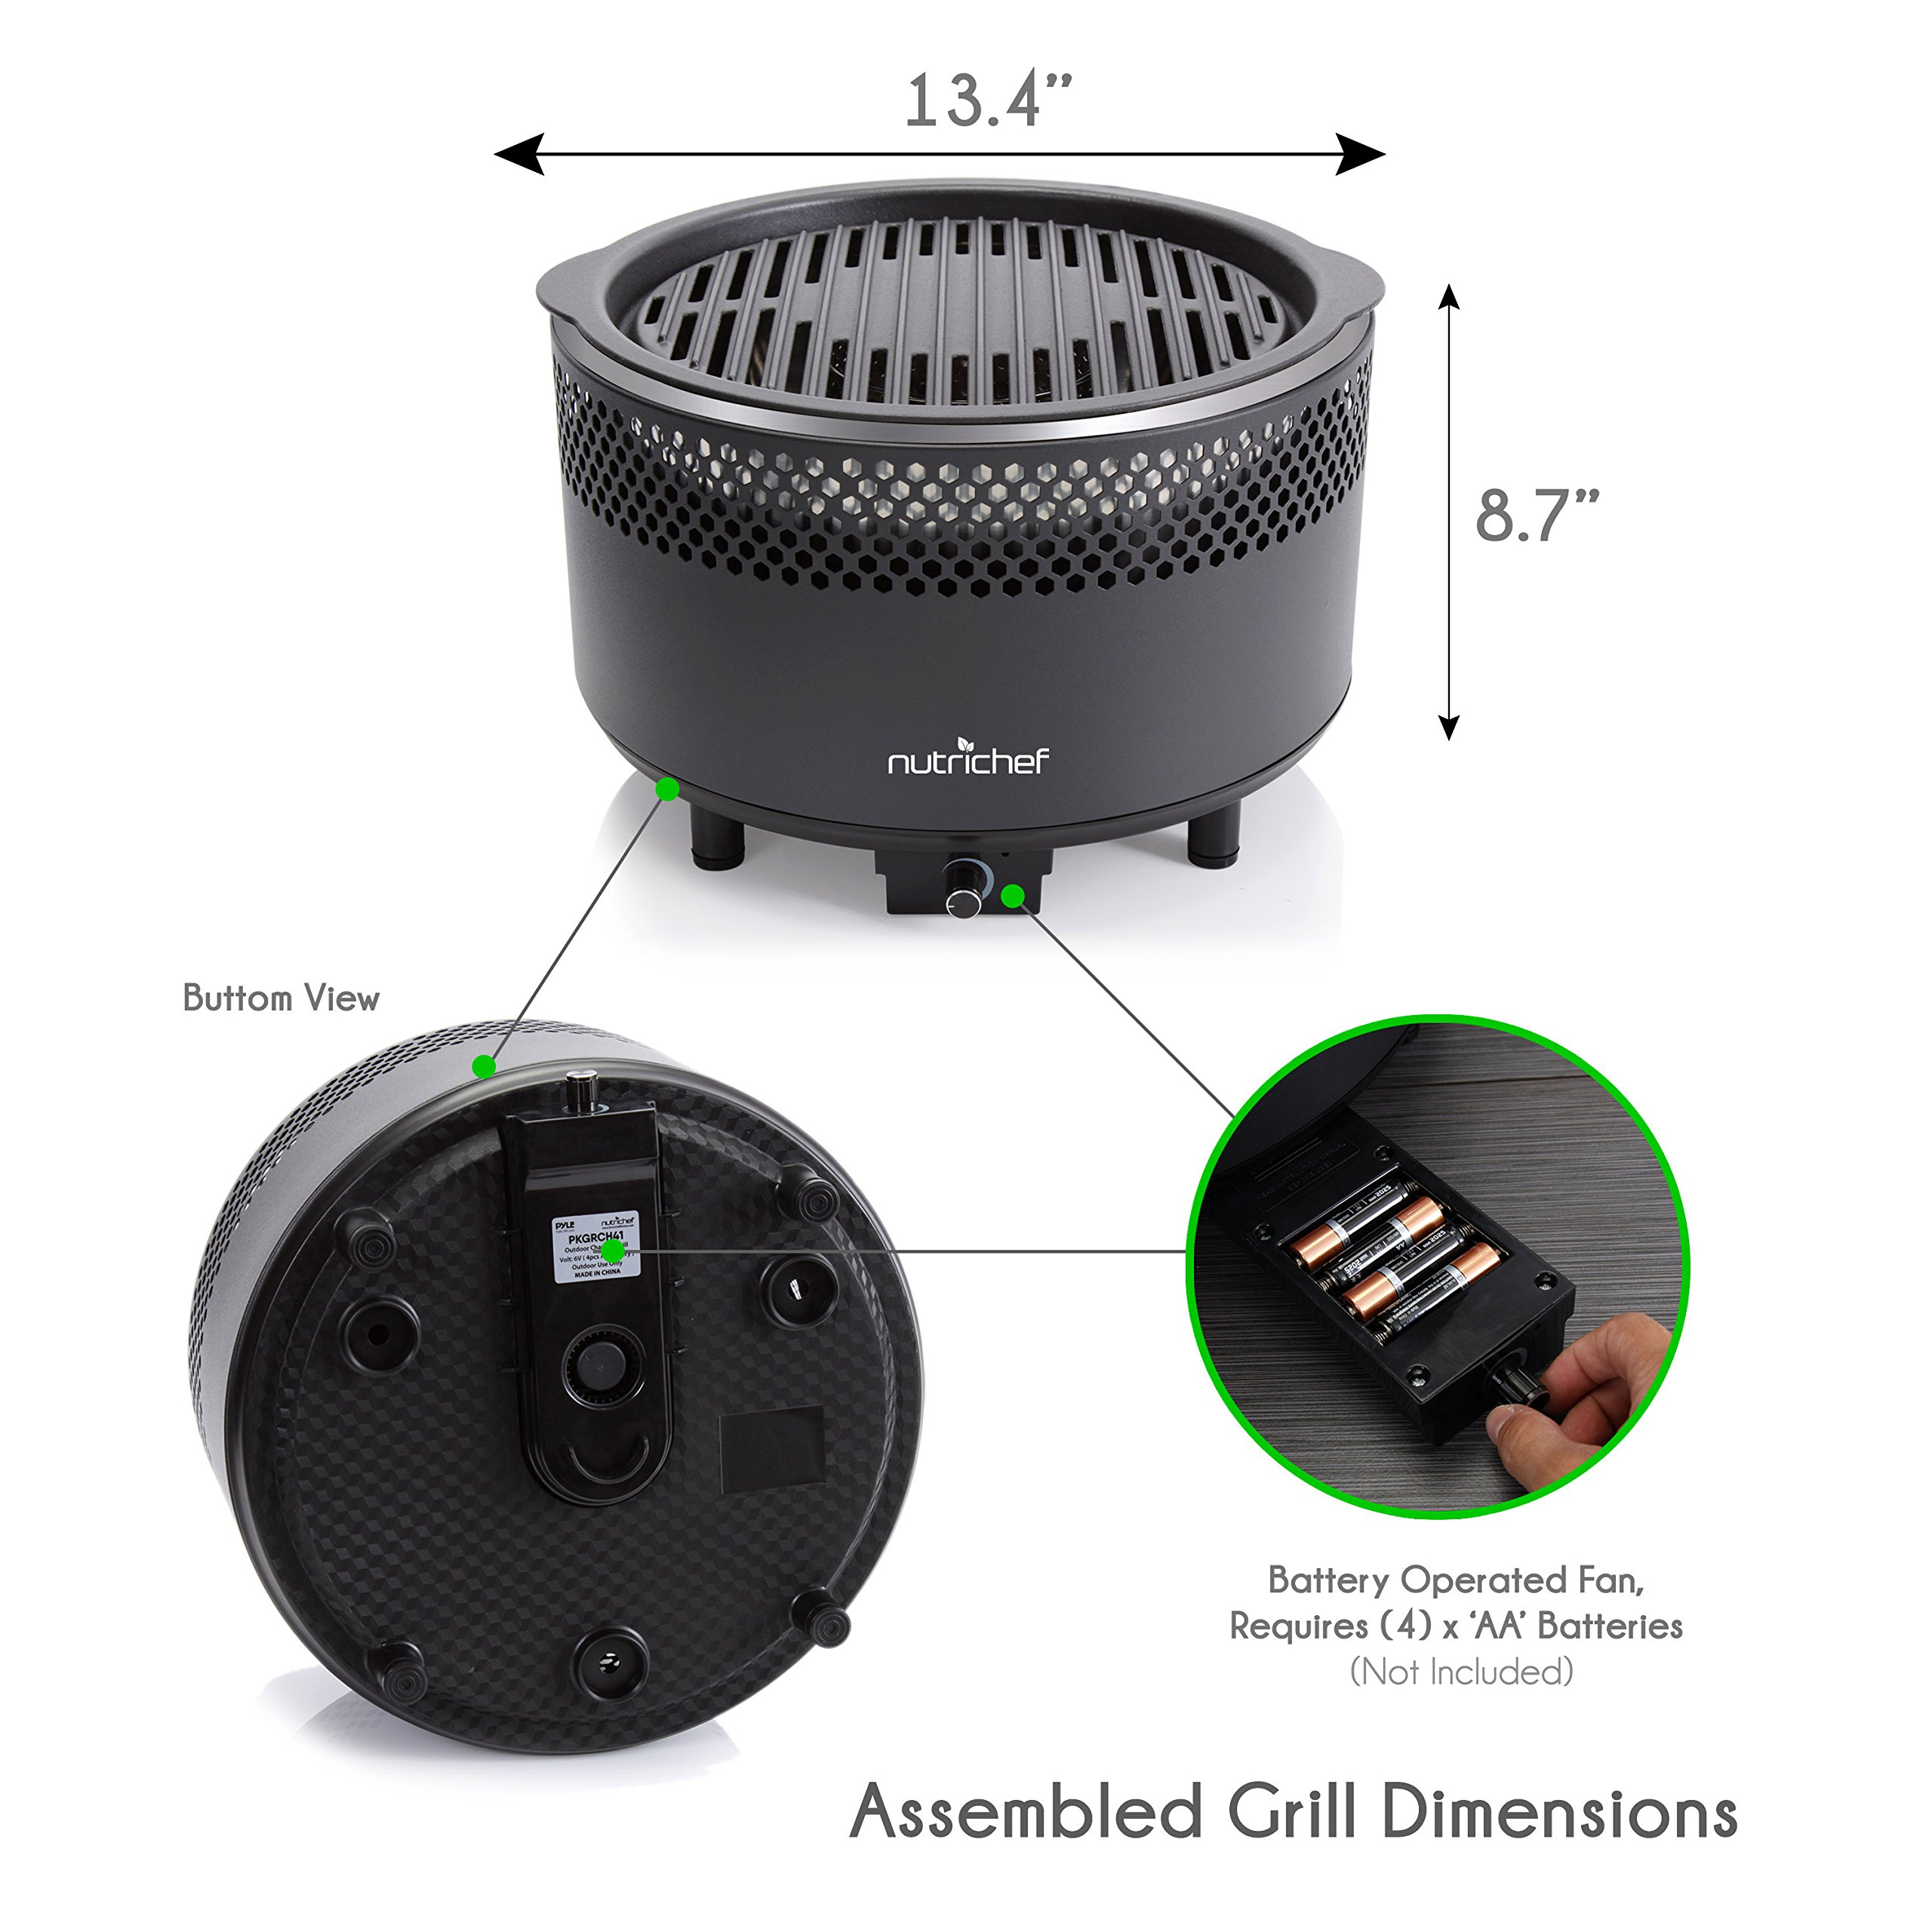 NutriChef Upgraded Charcoal BBQ Grill - Smokeless Portable Outdoor Stainless Steel Compact Easy Cleaning Heavy Duty - Battery Powered W/ Grilling Rack Coal Basket Ignition Tray & Box Set - PKGRCH41 by NutriChef (Image #4)